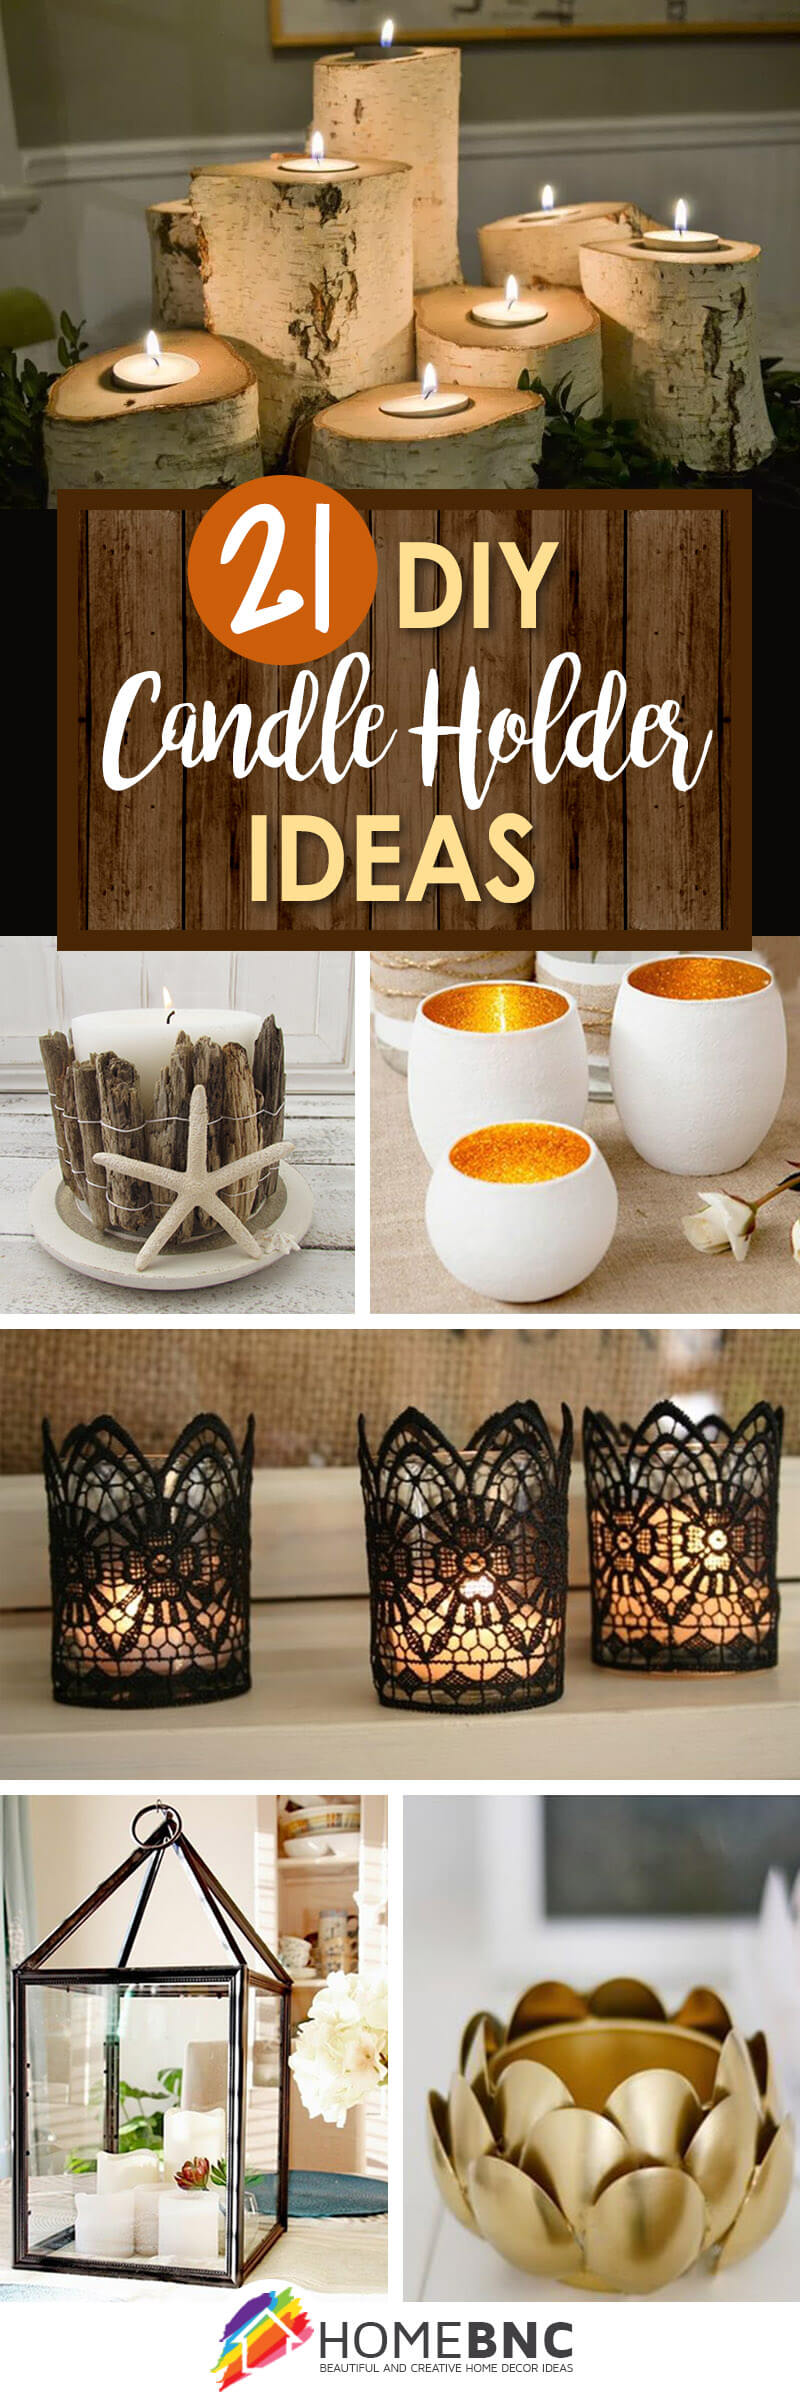 DIY Candle Holder Decor Ideas